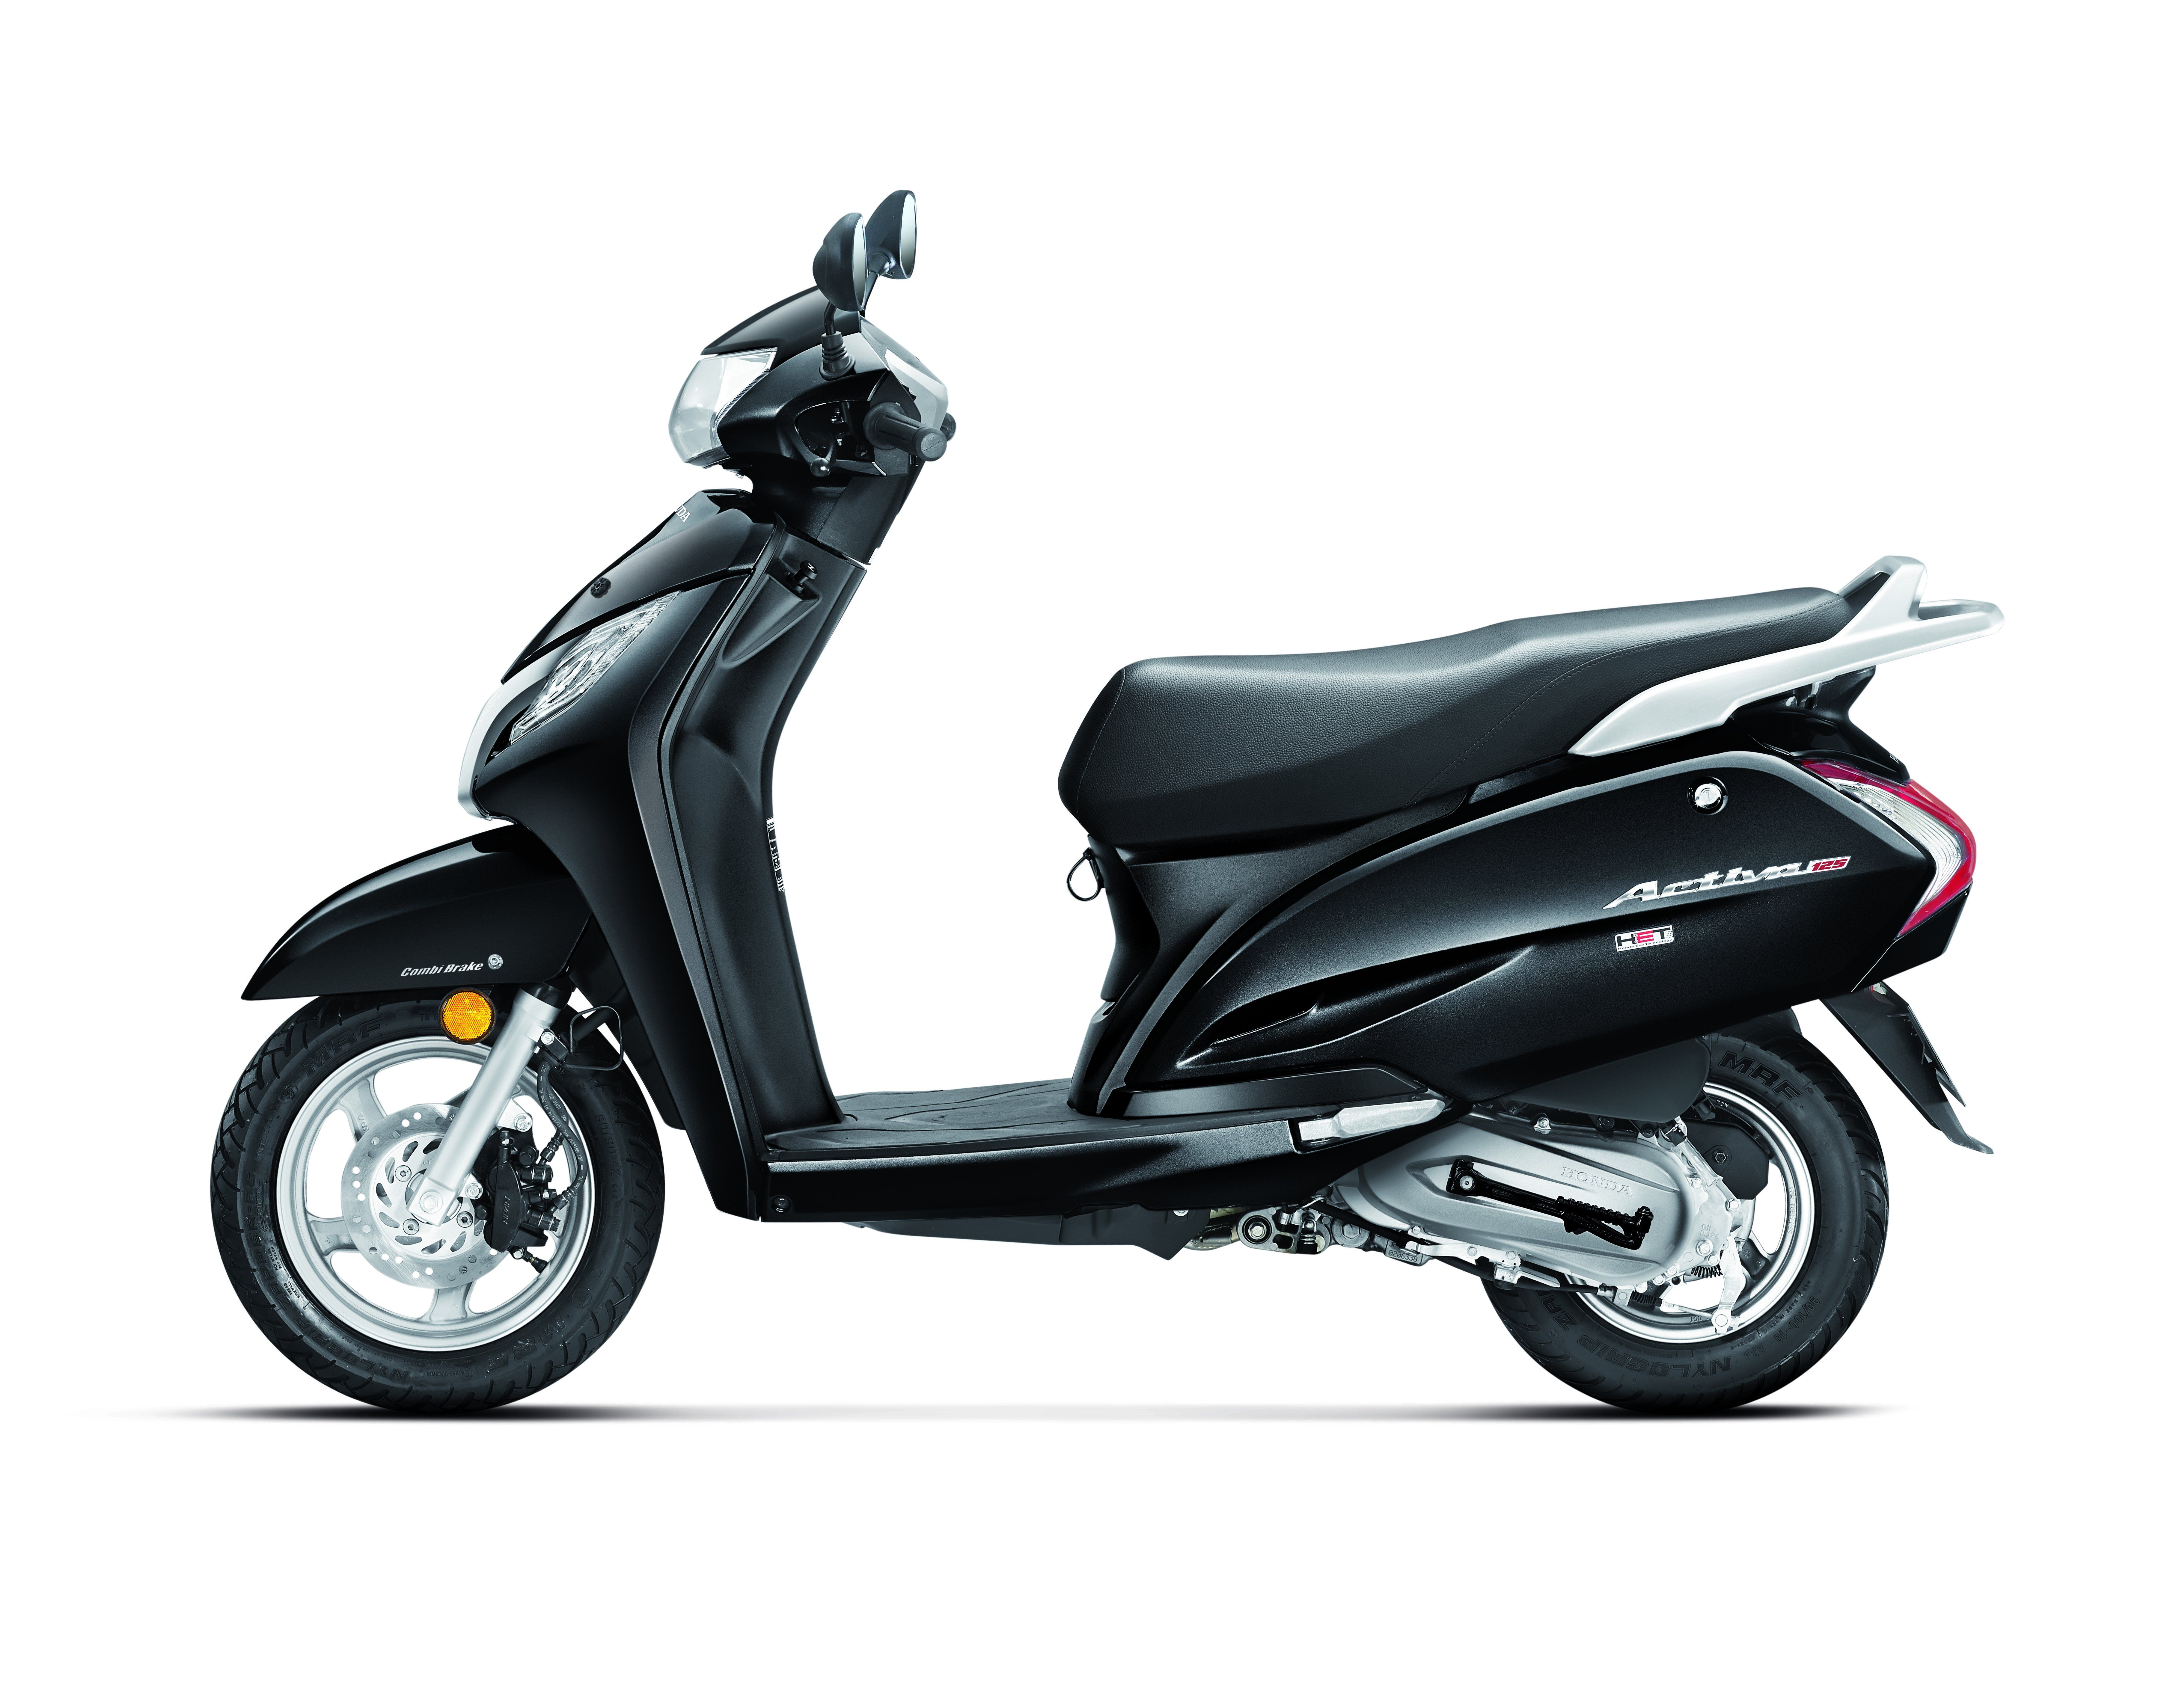 Honda activa 4g is the brand new economy scooter in india